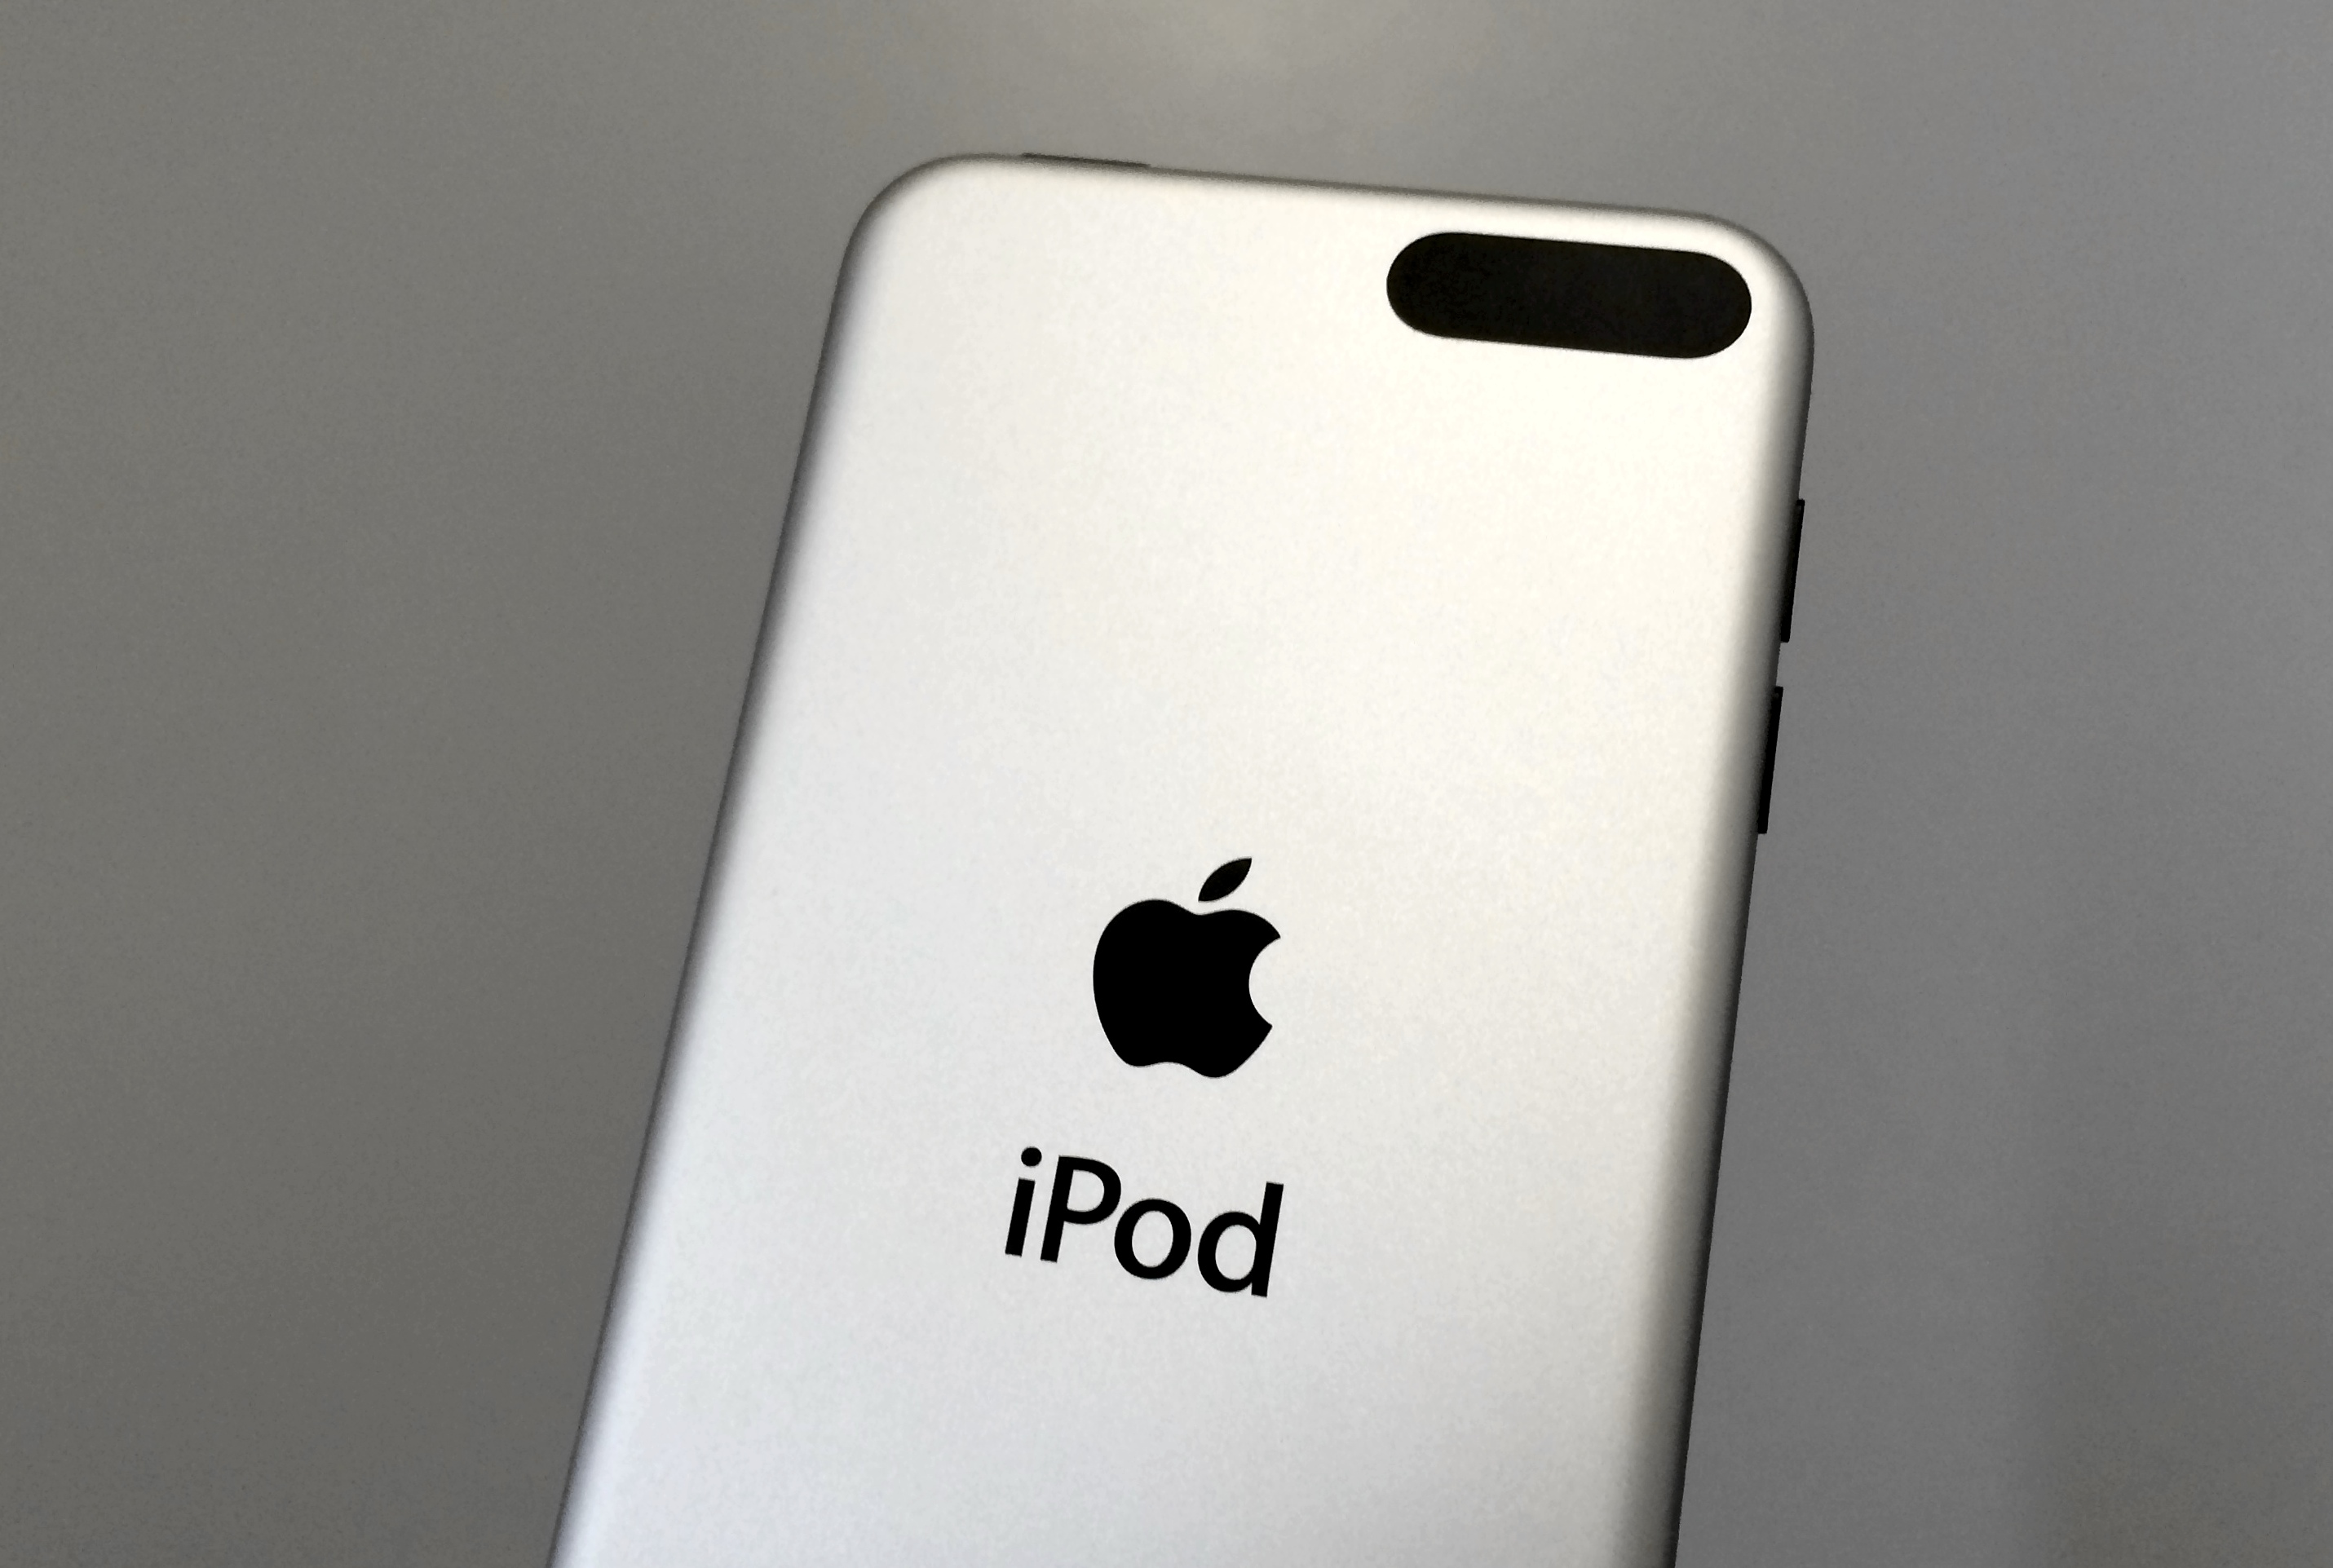 Ipod release date in Melbourne